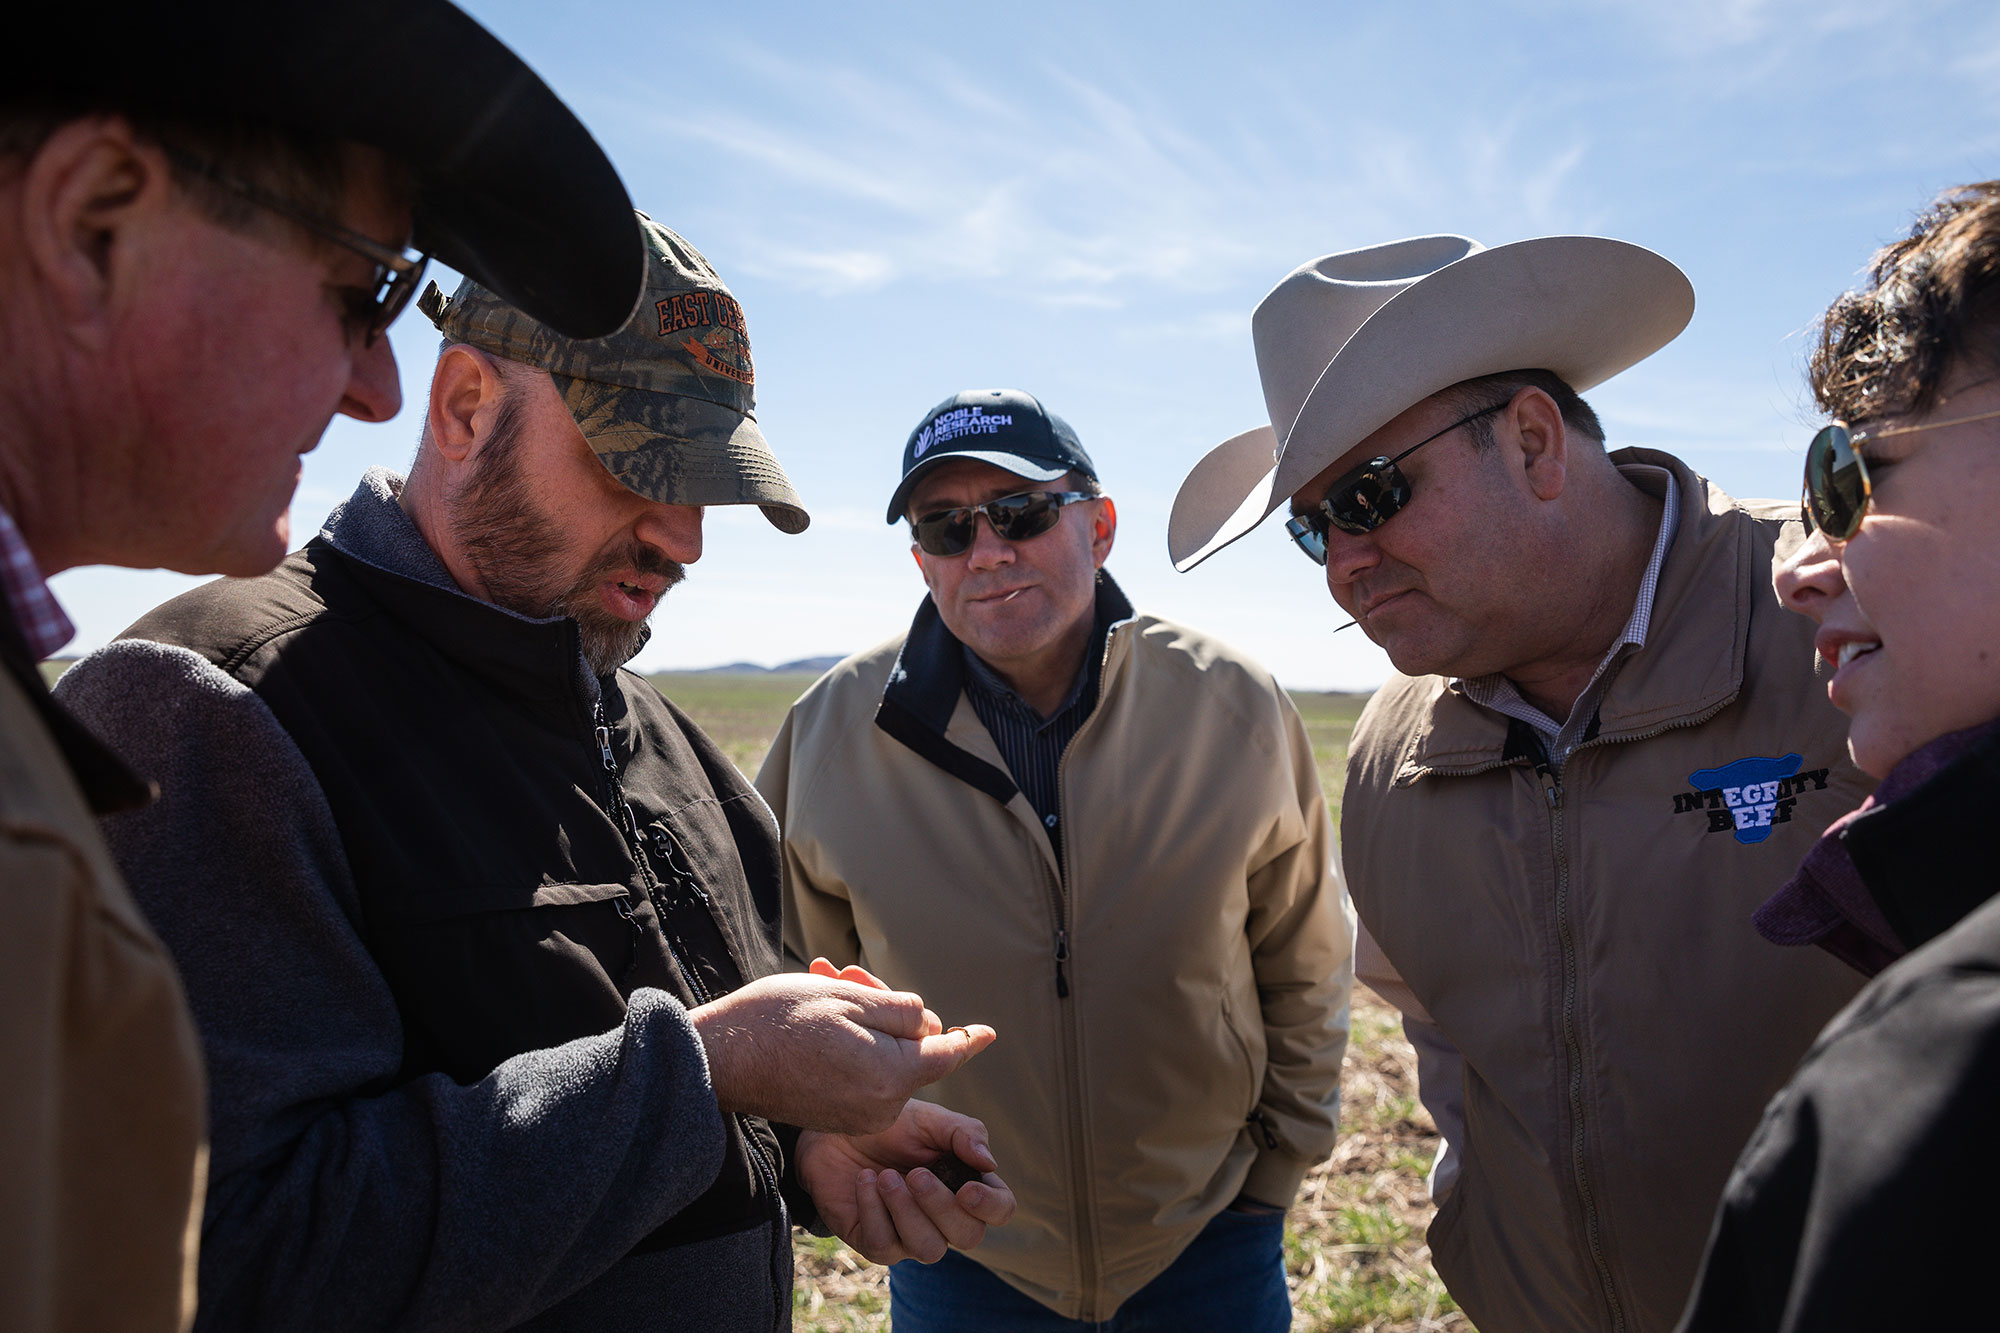 Consultants and producers look at the soil